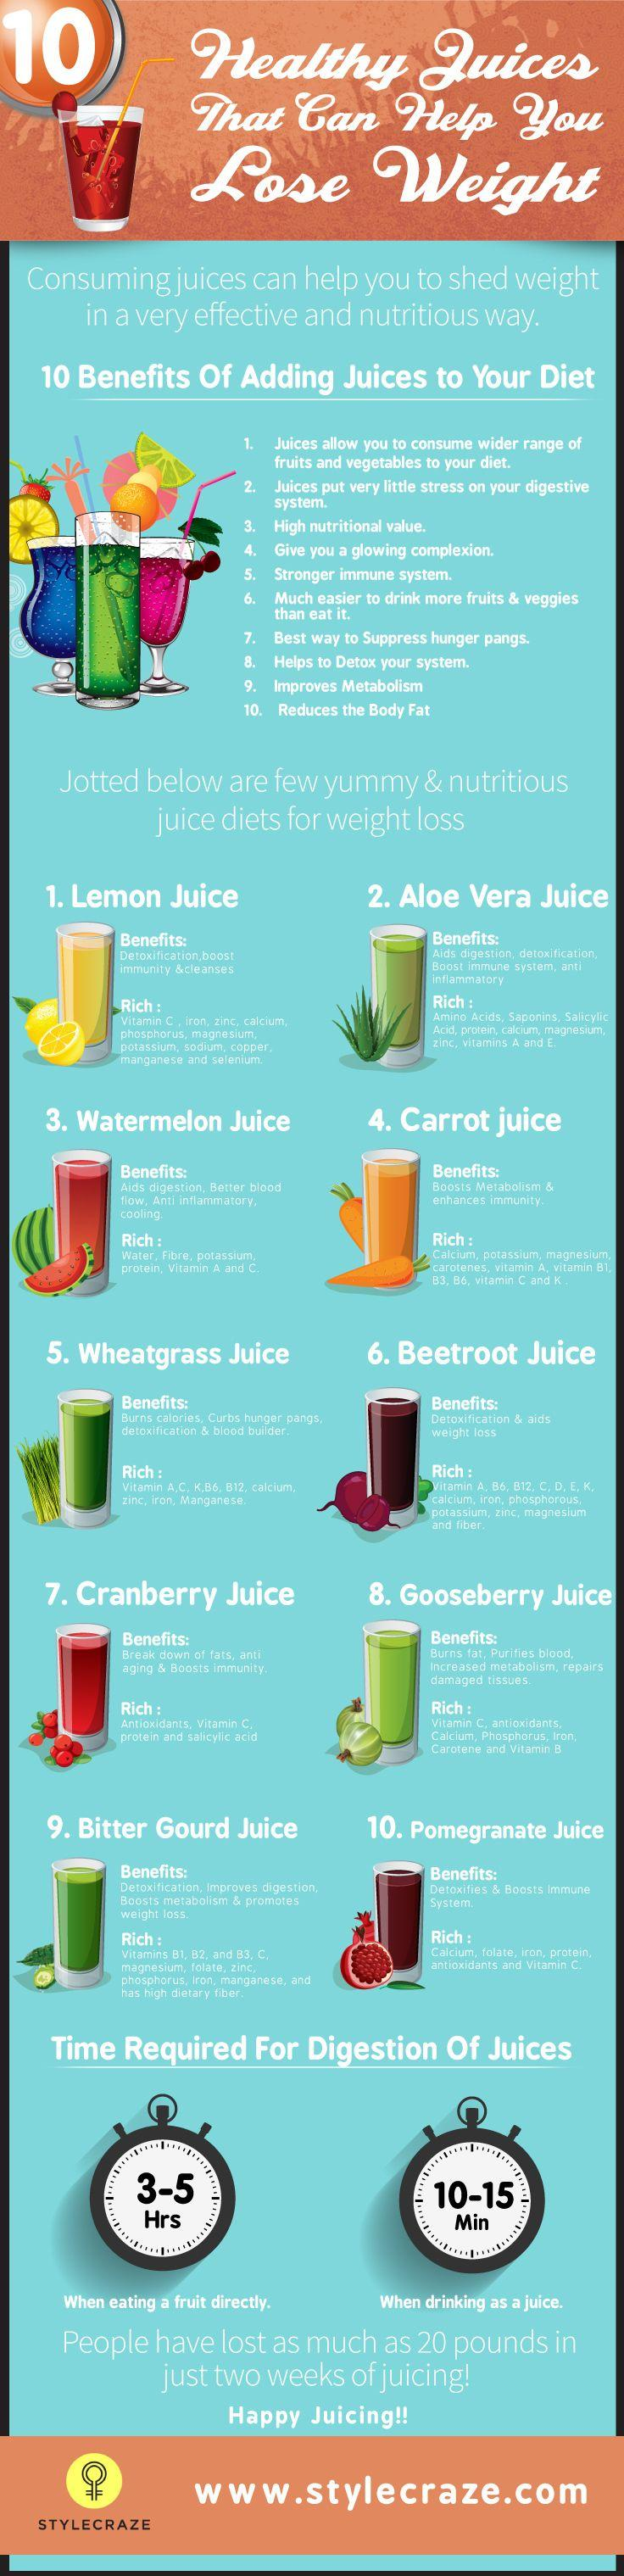 Wedding - 20 Healthy Juices That Can Help You Lose Weight